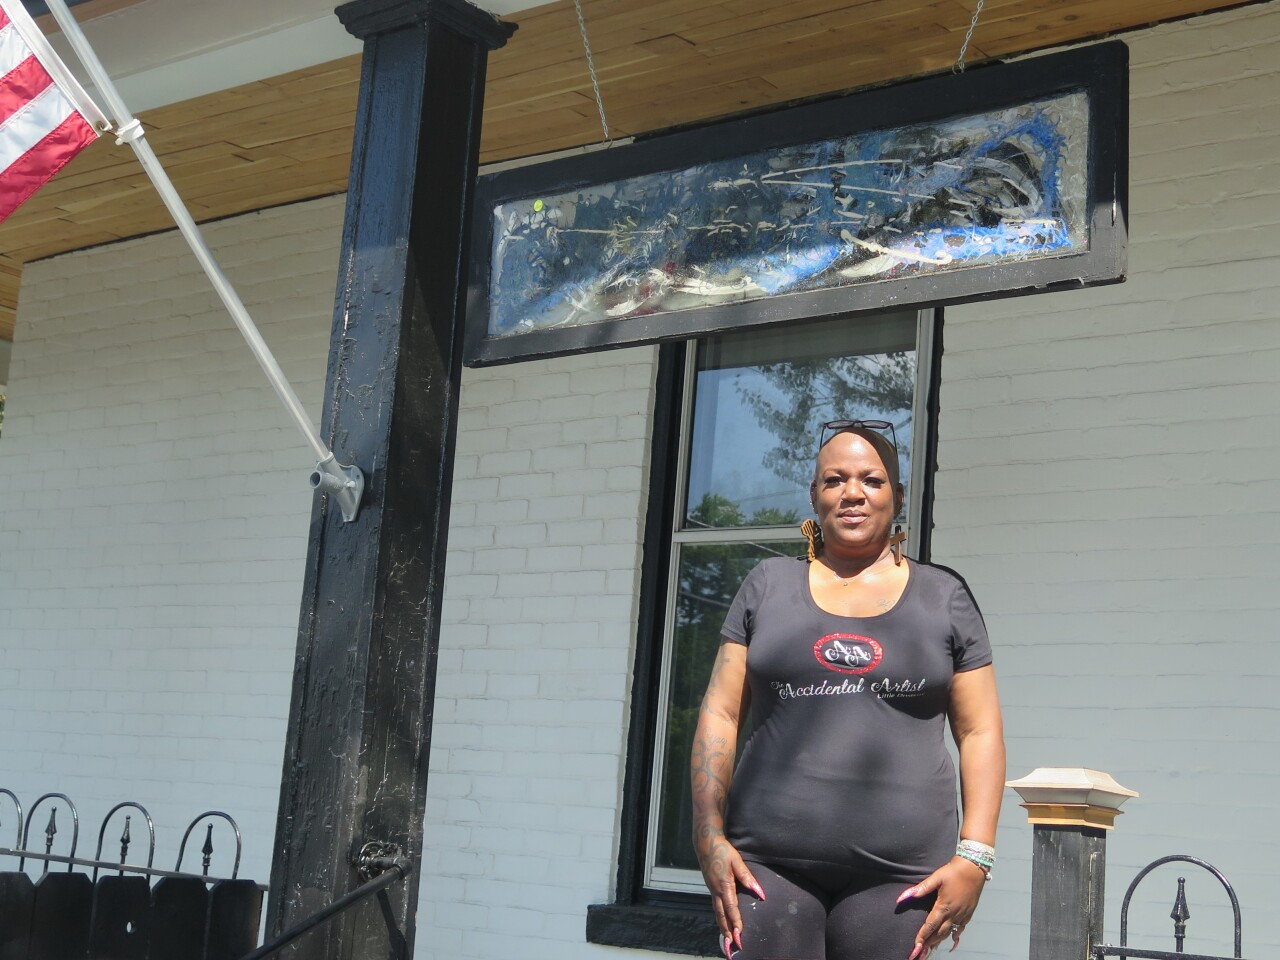 Nina Edwards standing on the front porch of the house where Annie Hargraves once lived. Above her is one of the old windows from the house that Edwards painted. Photo taken Aug. 24, 2021. The window has an abstract design that includes blue, black and white.